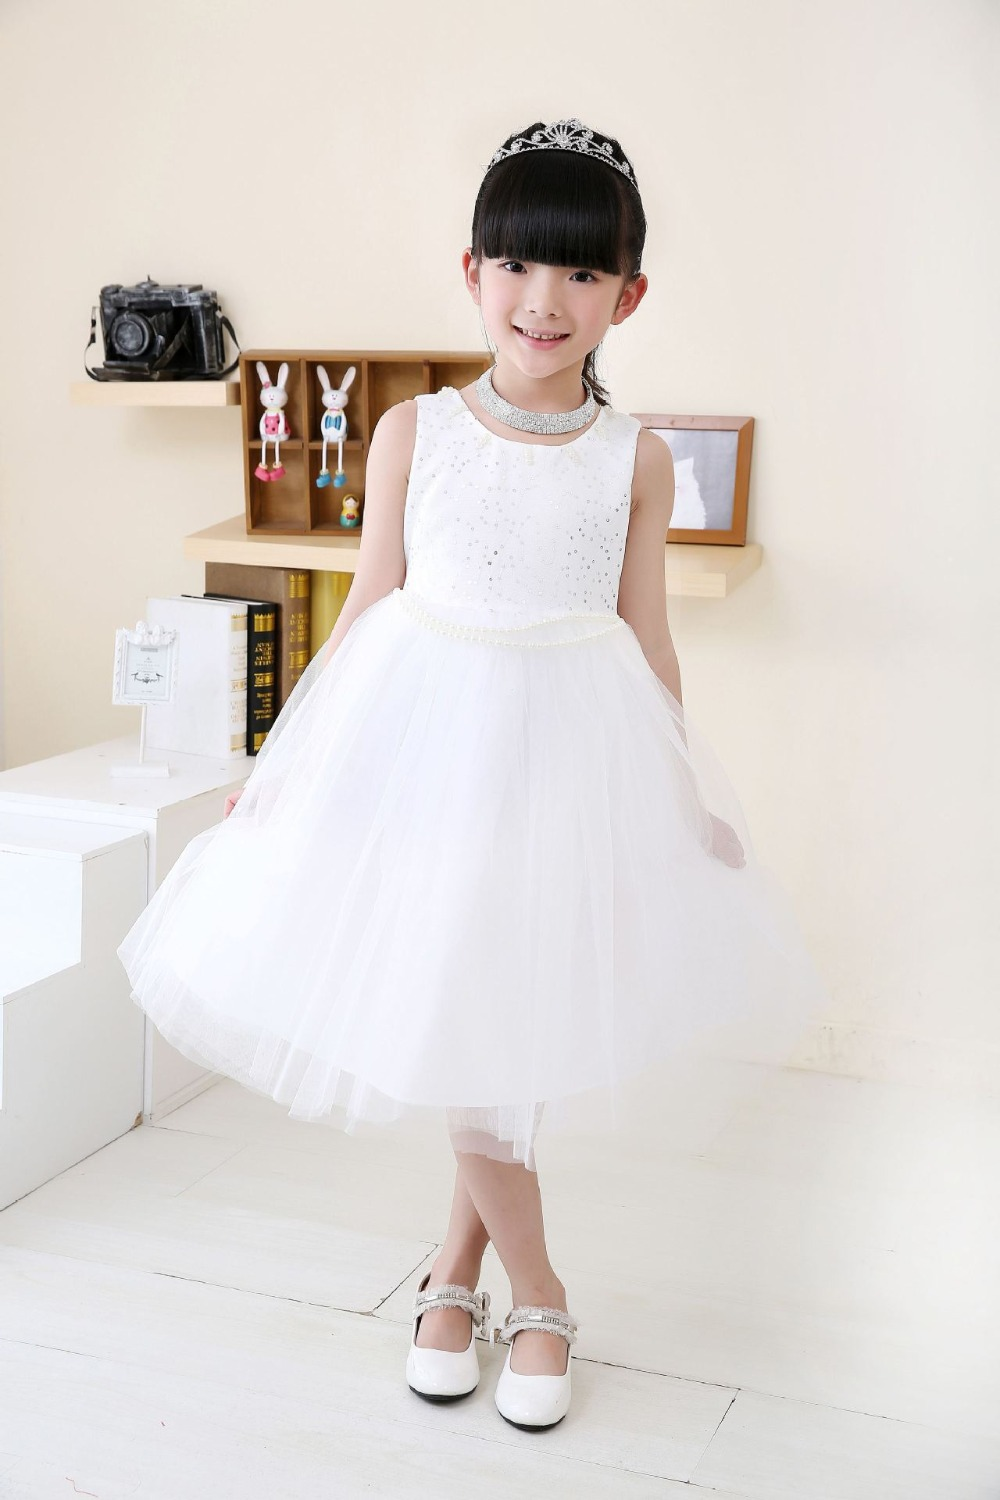 Formal Kids specializes in formal wear for children, teens and adults. We offer a large selection of discount flower girl dresses, bridesmaid dresses, pageant dresses, boys christening, boys tuxedos and suits, girls christening gowns, baptismal dresses, communion dresses, plus size dresses, infant tuxedos, children tuxedos, little boys.